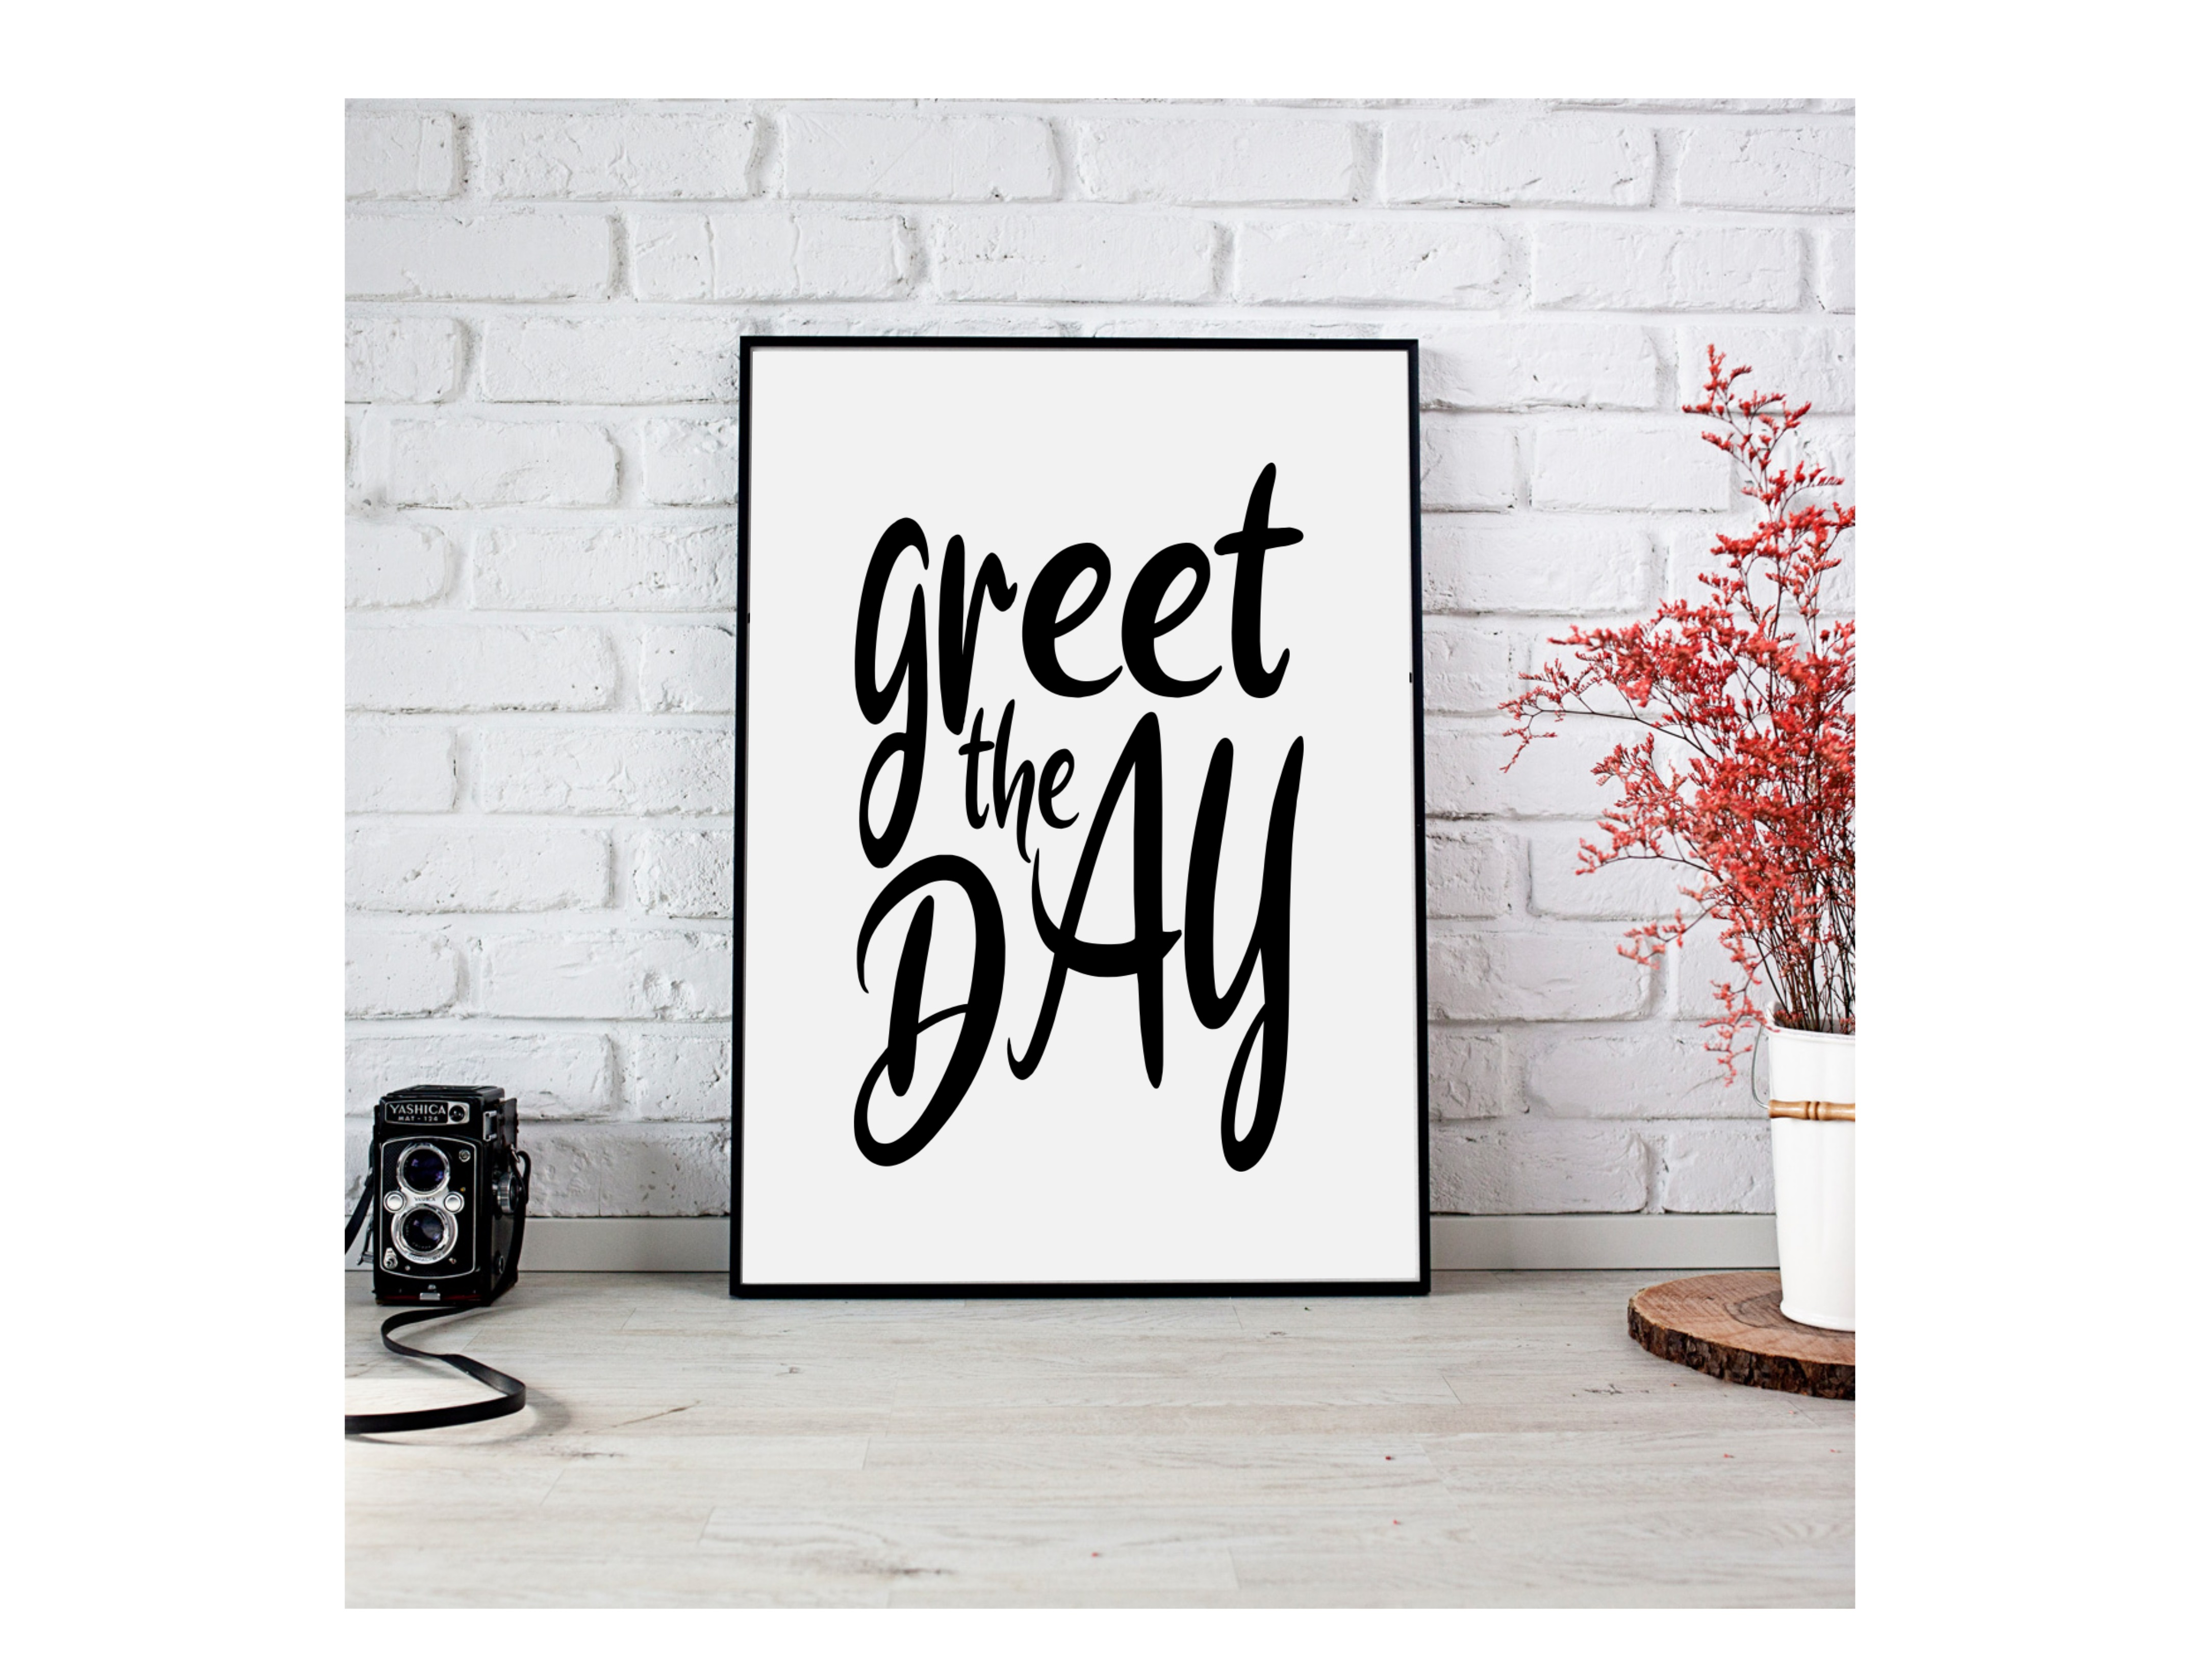 Download Free Printable Wall Art For Home Office Decoration Graphic By for Cricut Explore, Silhouette and other cutting machines.